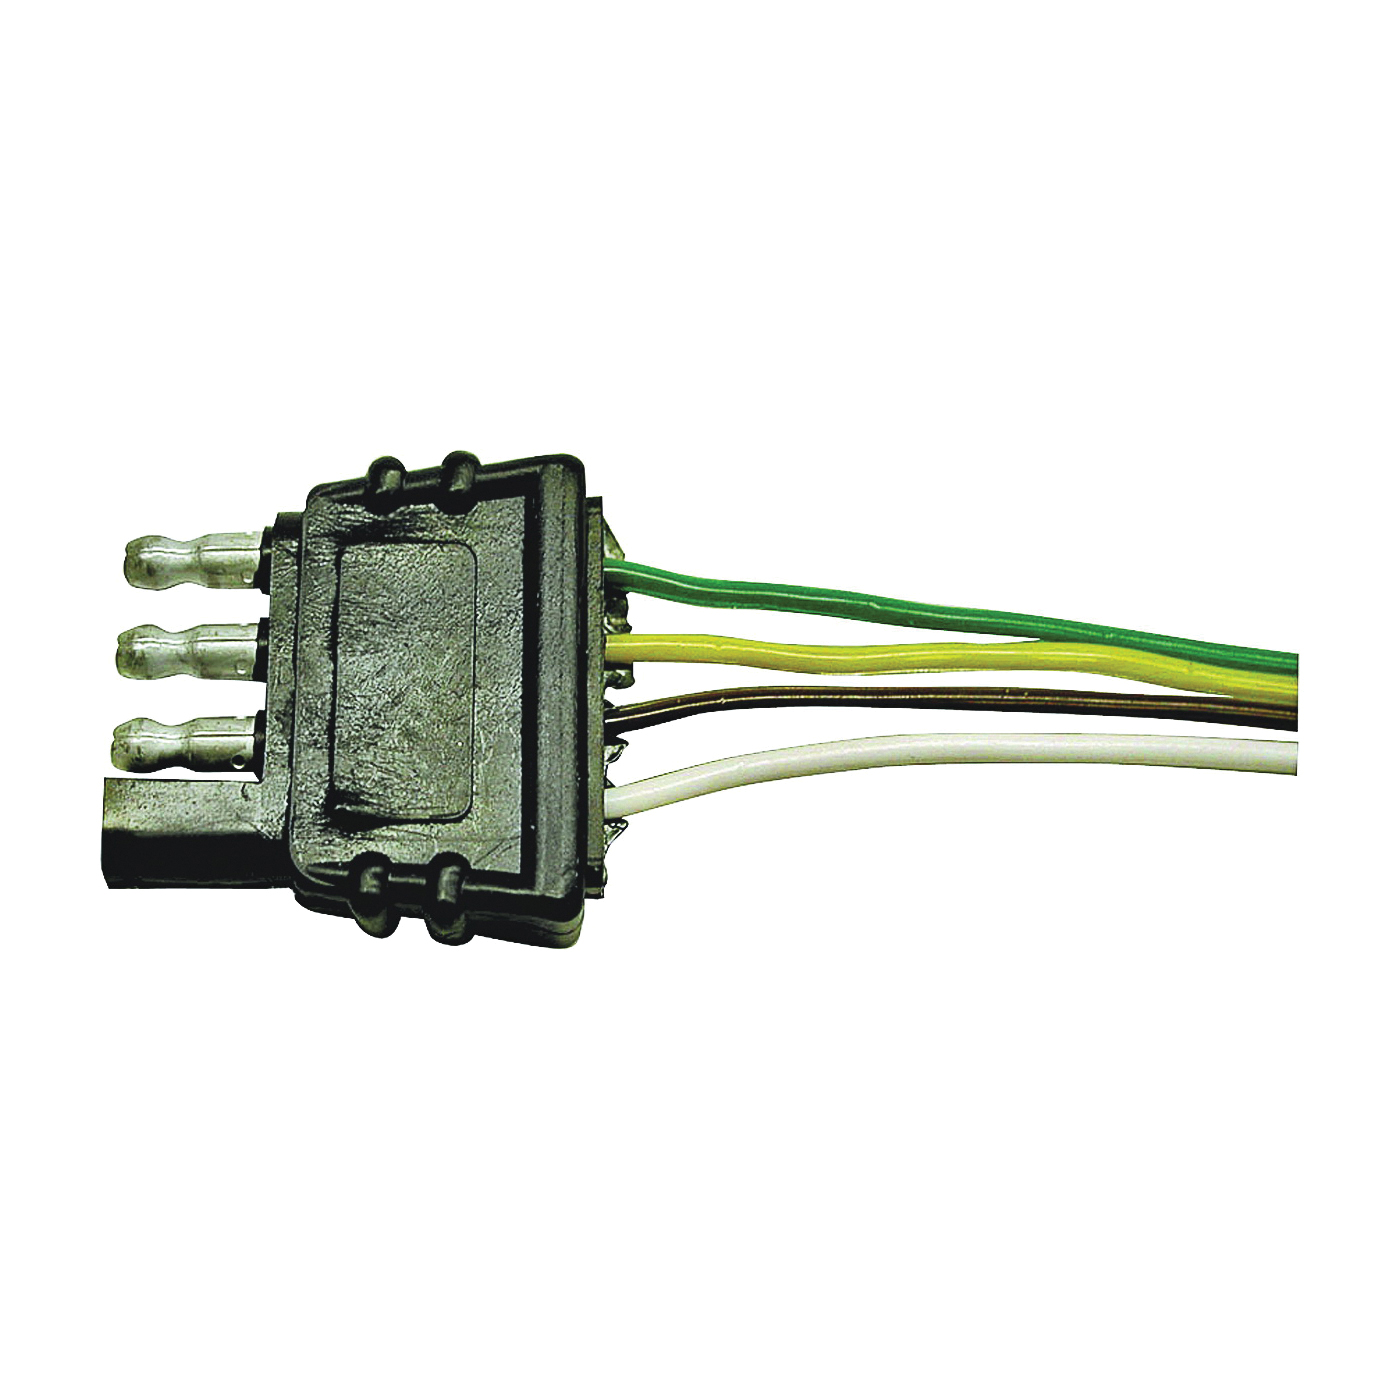 Picture of PM V5400A 4-Way Flat Trailer Connector